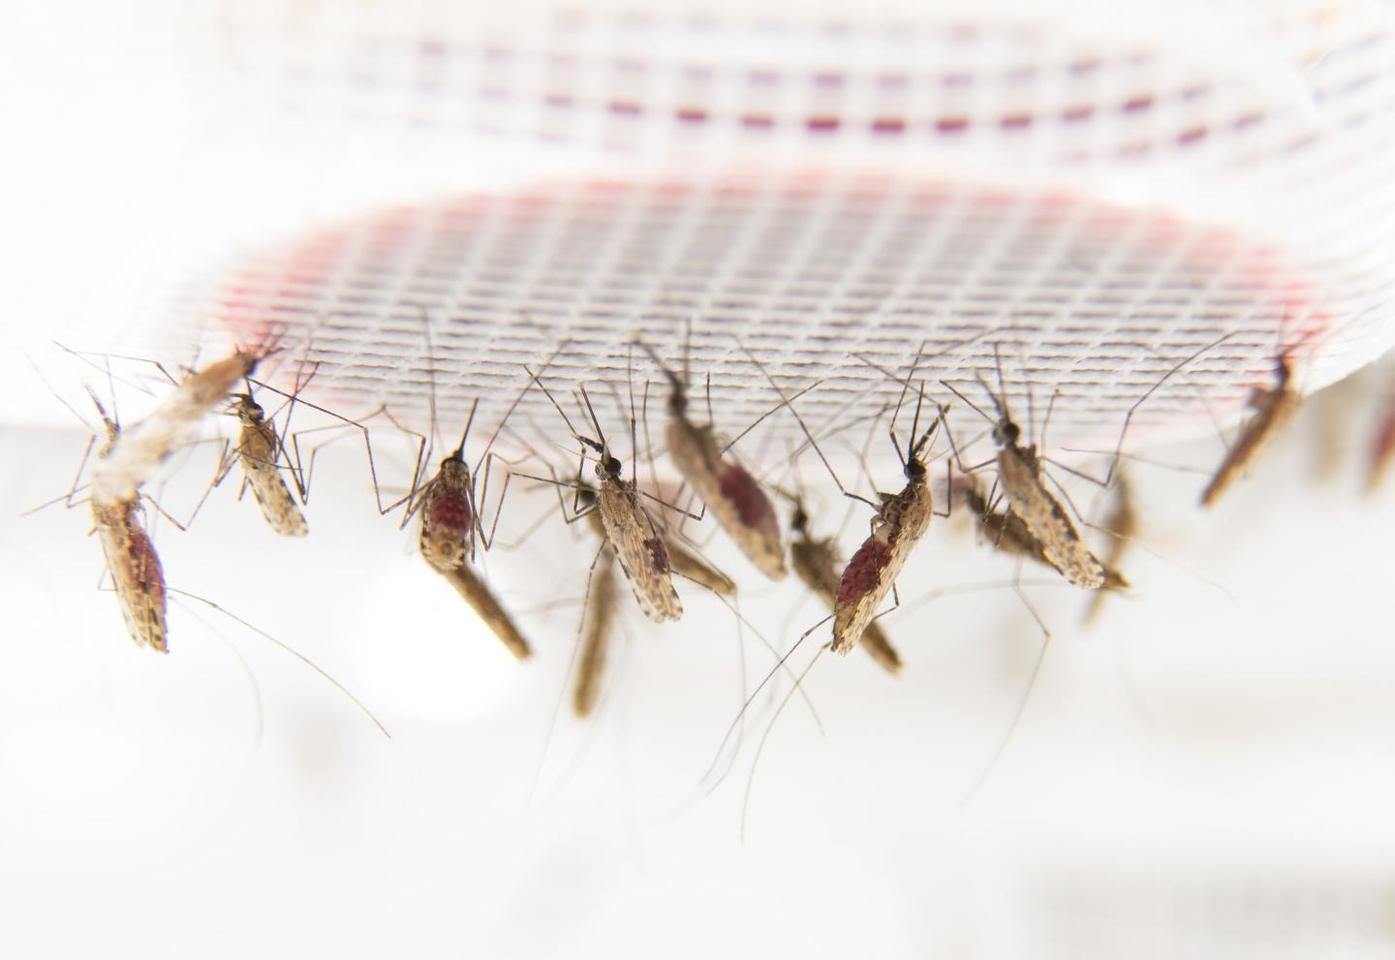 Mosquitos feeding the lab at Stockholm University